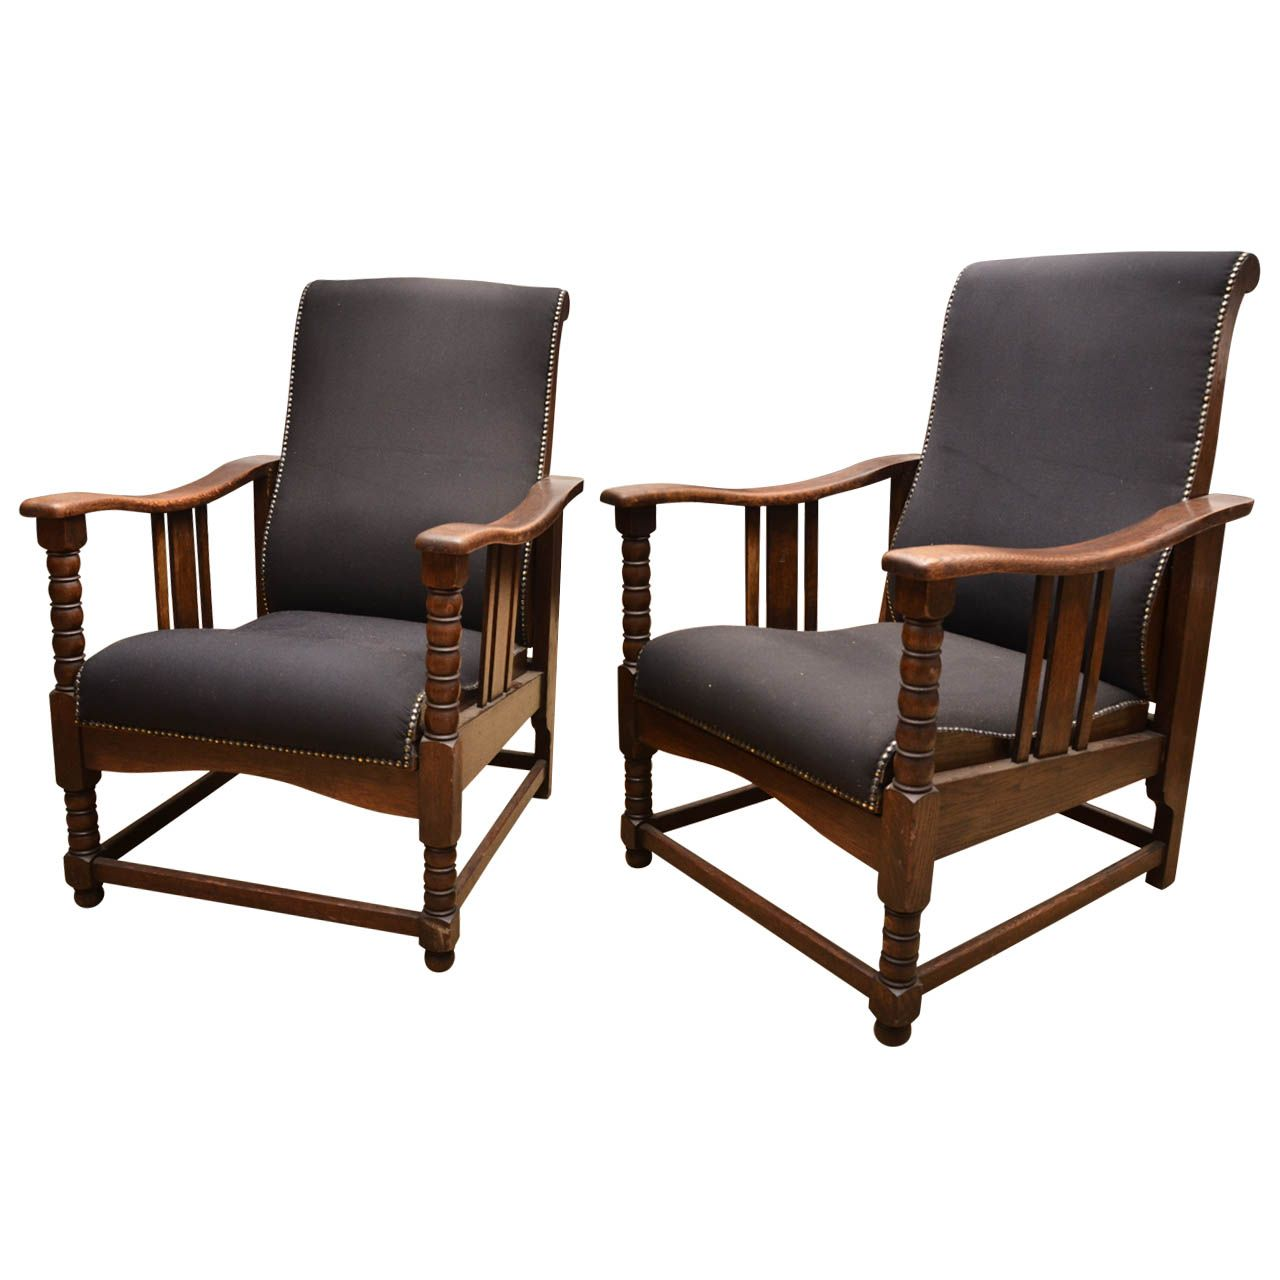 modern arts and crafts furniture. 1920u0027s pair of arts u0026 crafts upholstered oak reclining chairs from a unique collection modern and furniture